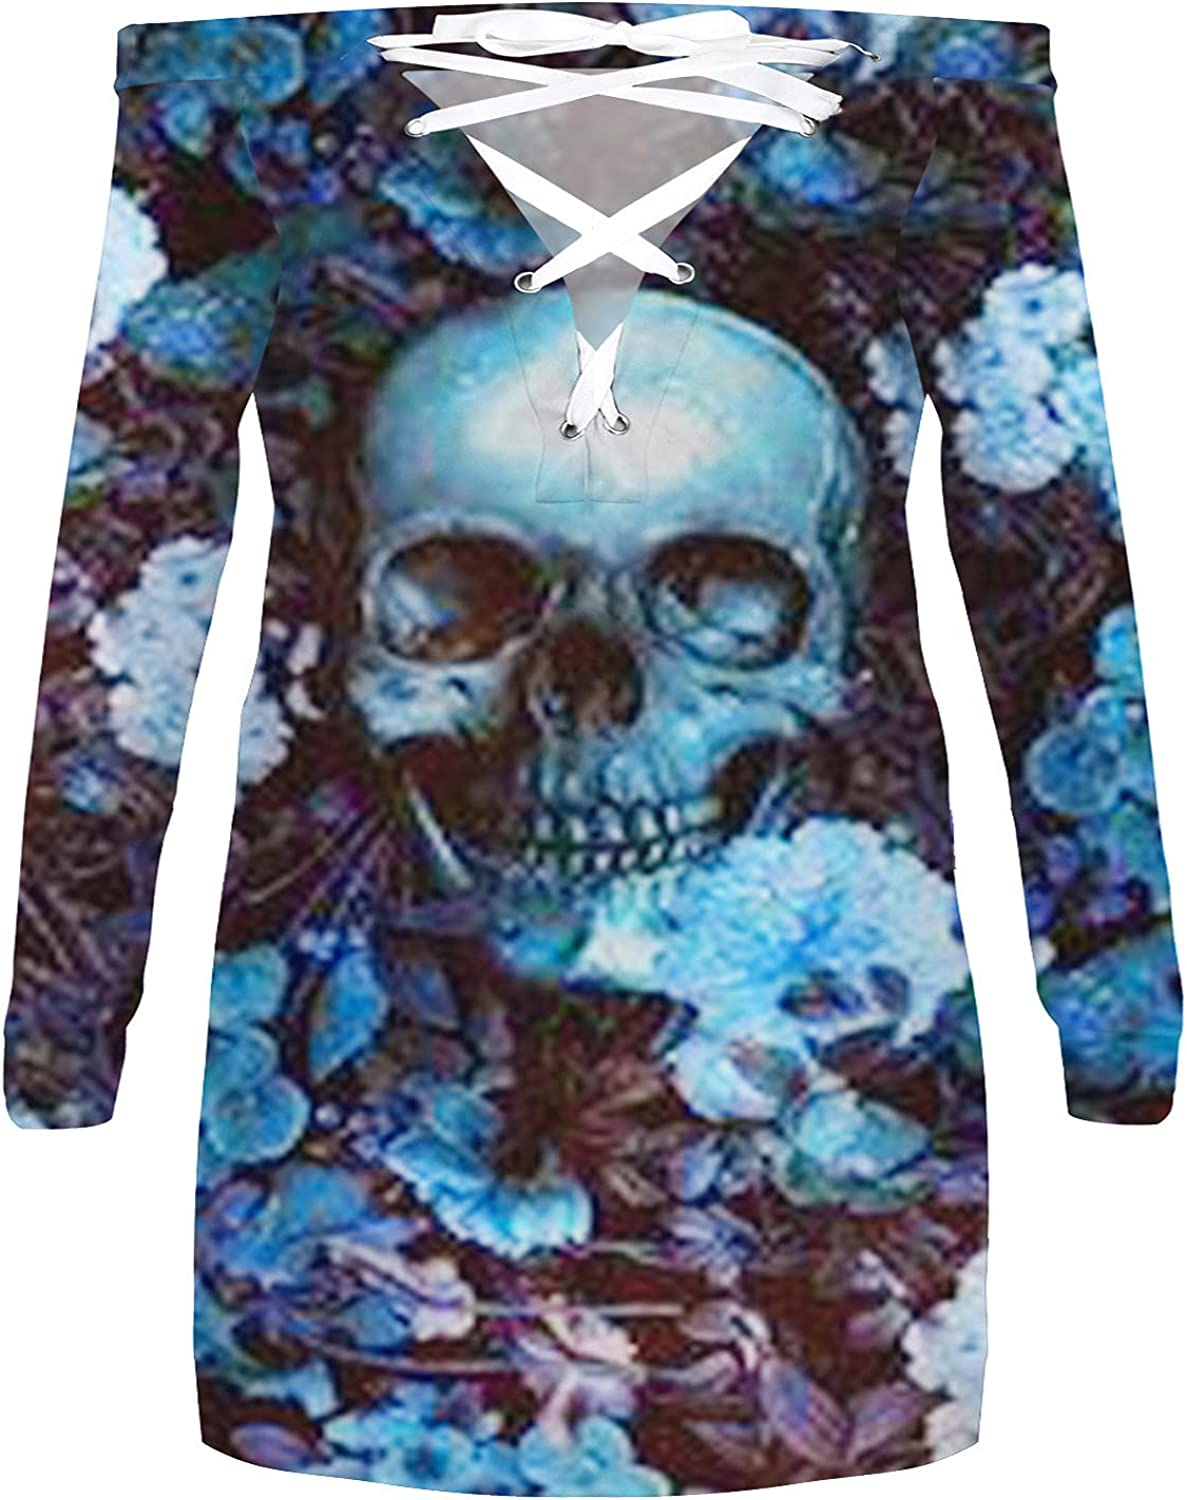 Women's Cold Shoulder Halloween Tops Long Sleeve Fall Fashion Exotic Clothes Sexy Lace Up Skull Graphic Tunic Blouses